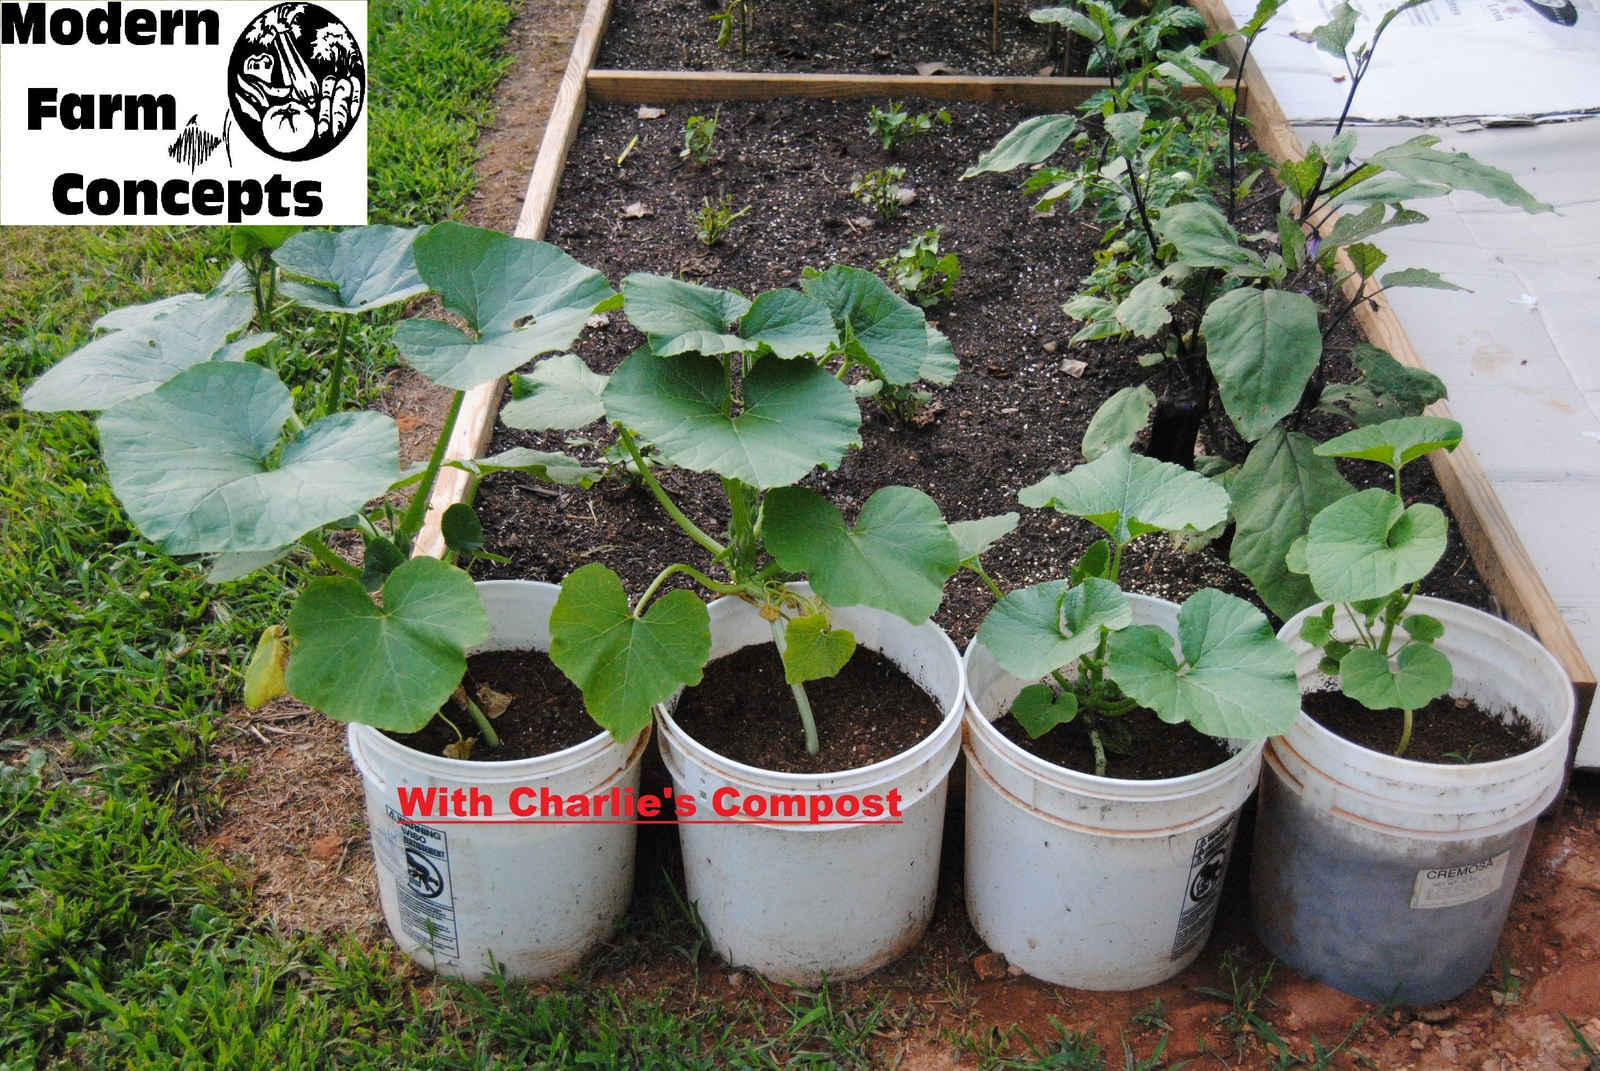 25 lbs charlie 39 s compost natural organic chicken manure fertilizer other plant care - Organic flower fertilizer homemade solutions ...